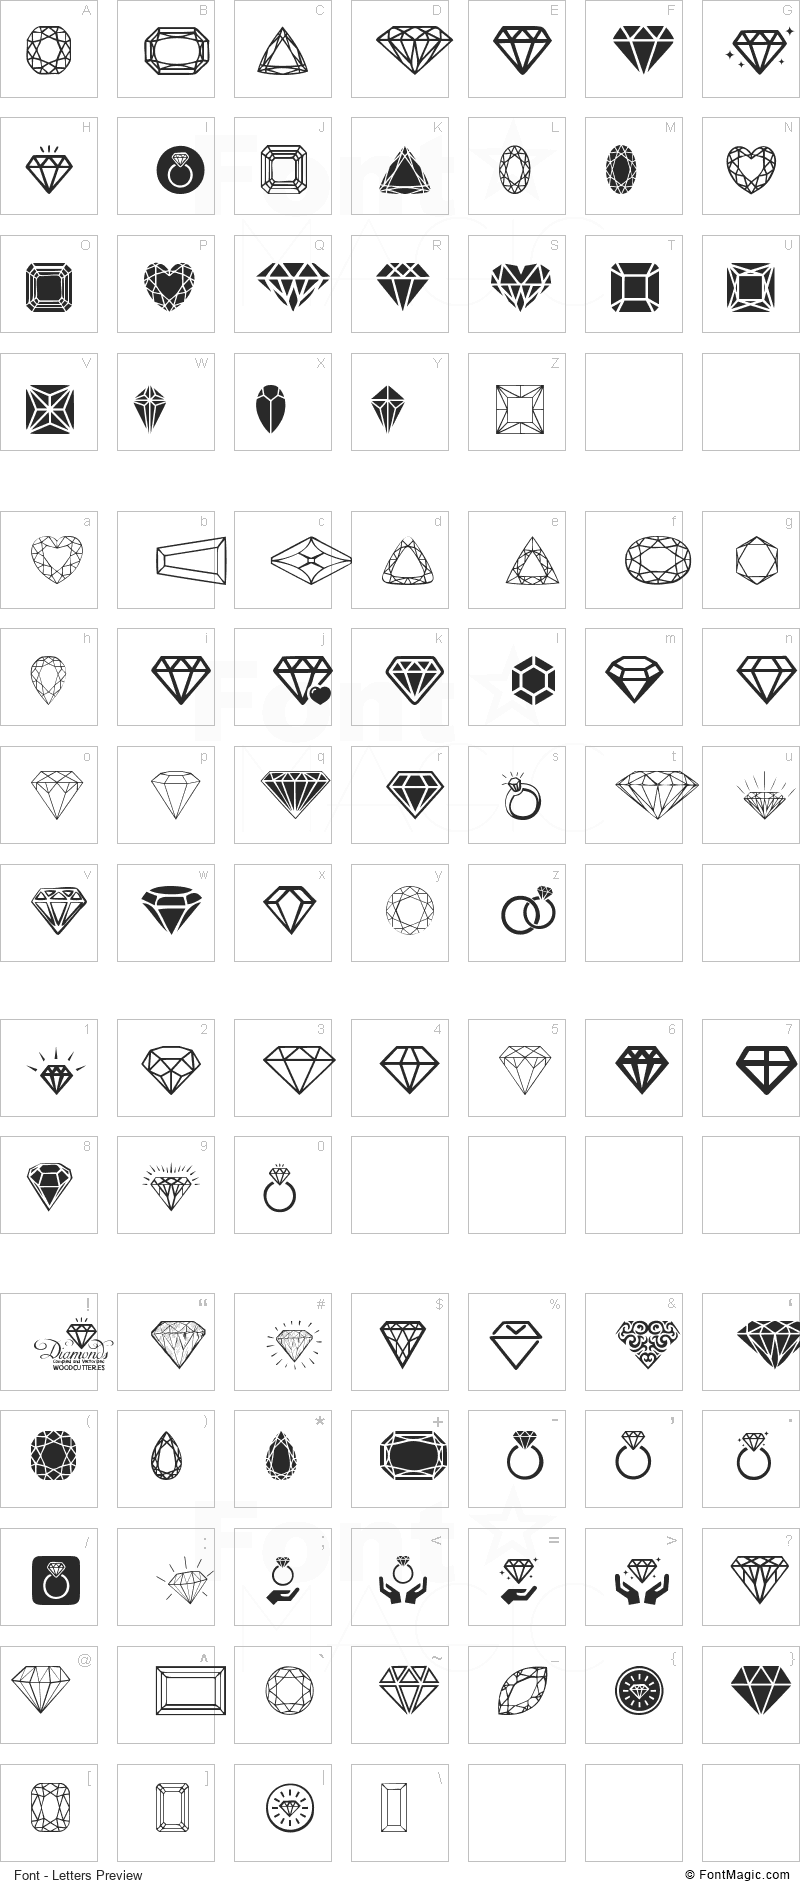 Diamonds Font - All Latters Preview Chart